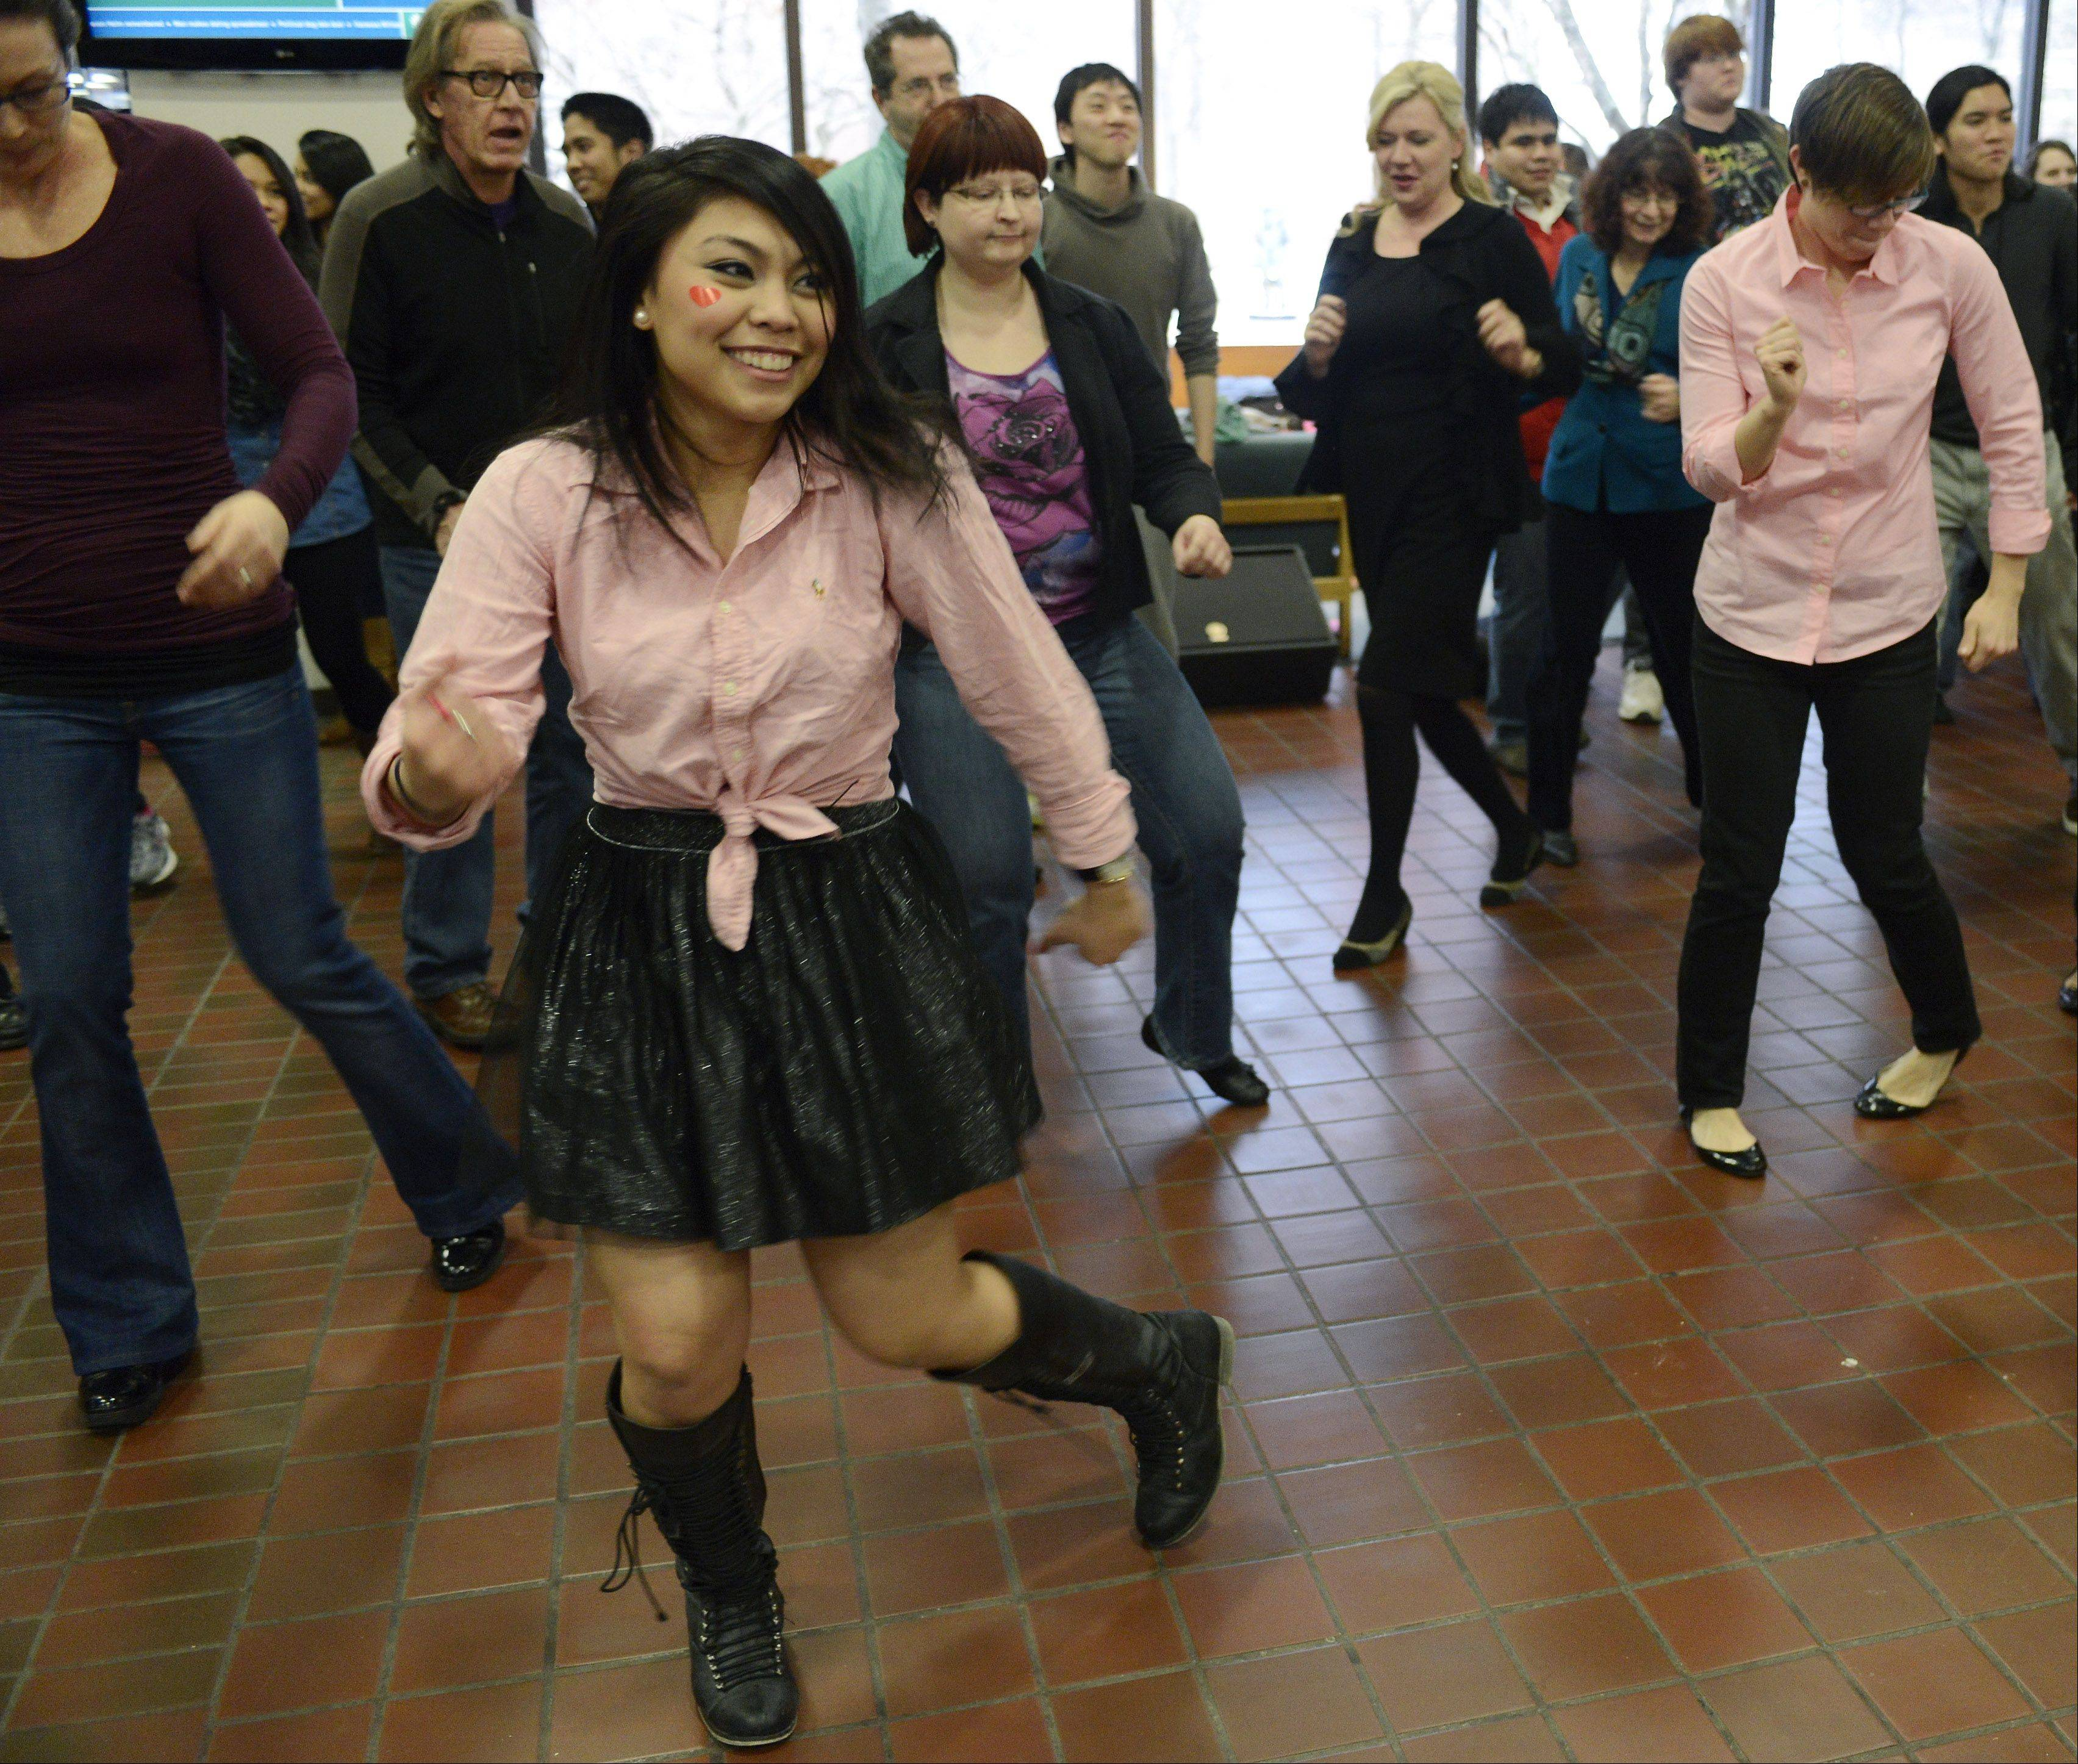 Cristine De Clarin of Niles participates in a group dance during a One Billion Rising event to raise awareness about violence against women, sponsored by the Women and Gender Studies program at Oakton Community College in Des Plaines Thursday.